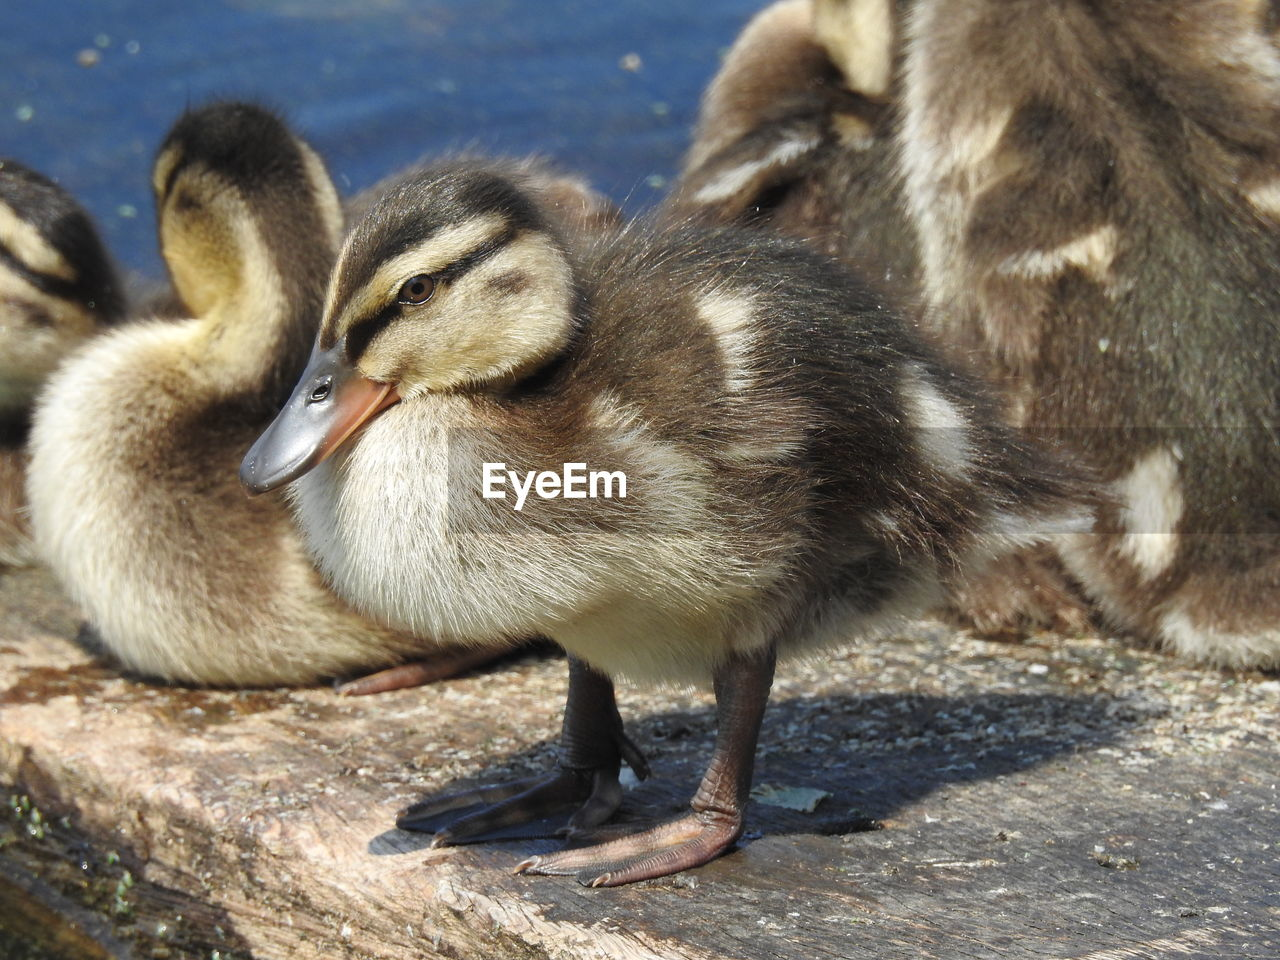 animal themes, animals in the wild, young bird, young animal, bird, animal wildlife, lake, day, no people, togetherness, water, outdoors, nature, close-up